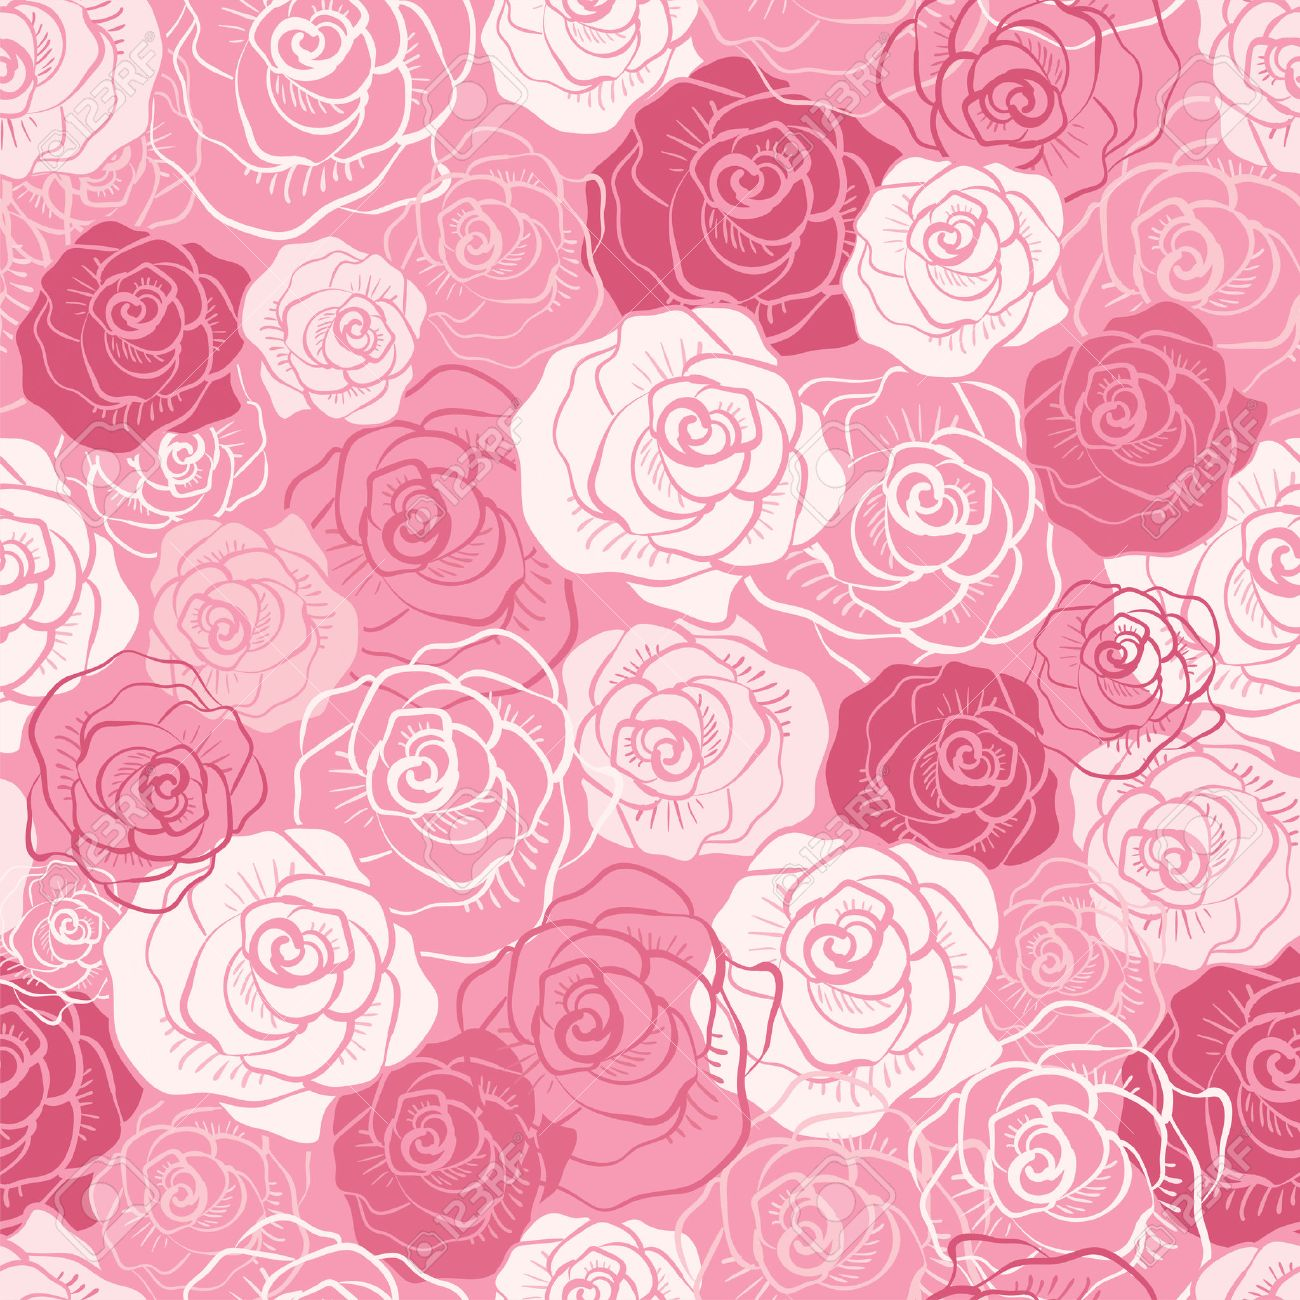 http://previews.123rf.com/images/kannaa123rf/kannaa123rf1401/kannaa123rf140100274/25346120-Rose-vector-seamless-pattern-Pink-red-white-shabby-colors-Floral-endless-texture-can-be-used-for-pri-Stock-Vector.jpg